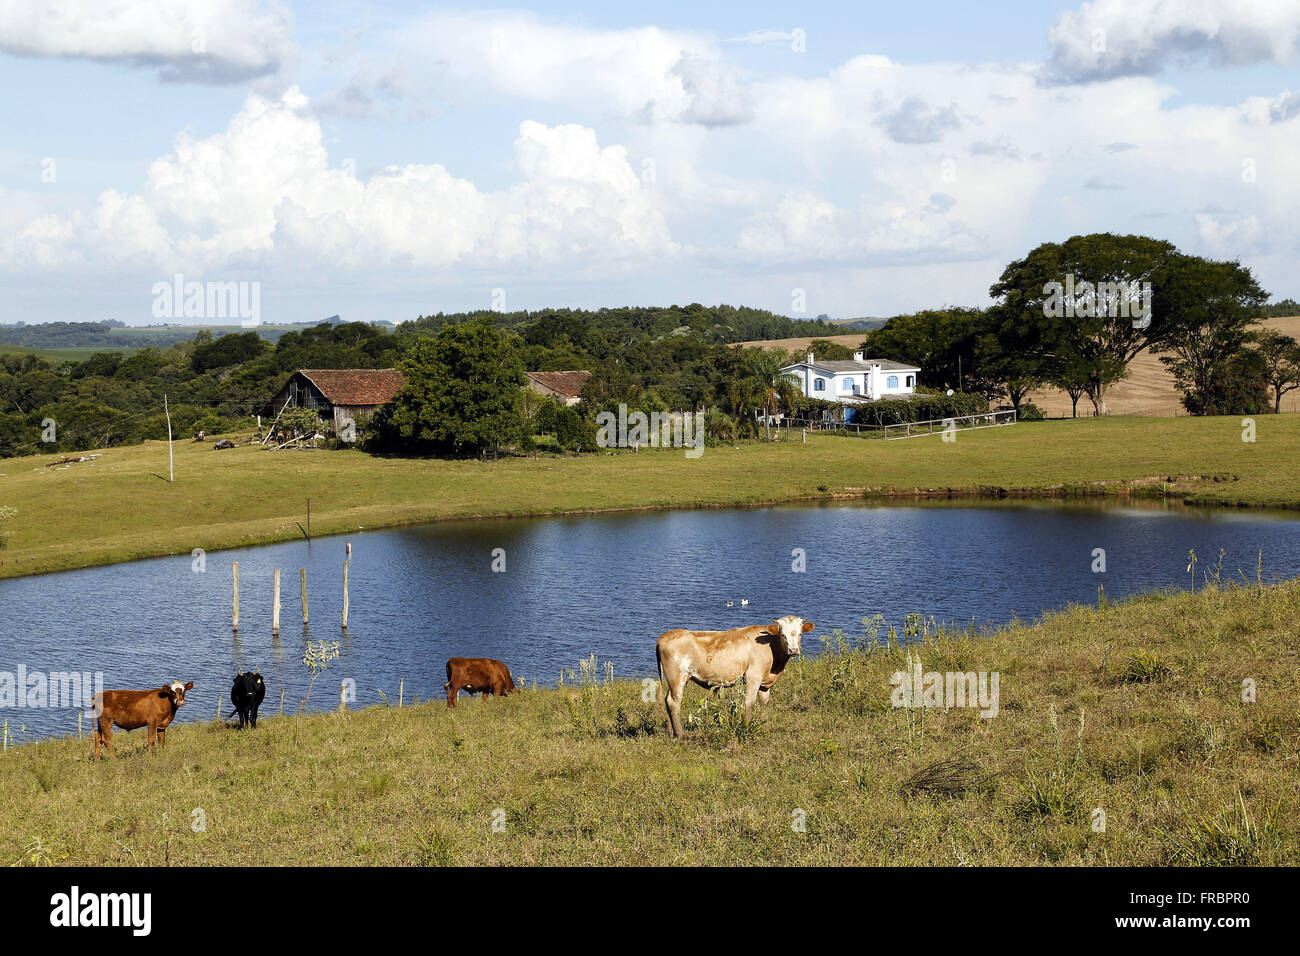 Cattle in the reservoir margin formed in the land depression in rural property Stock Photo